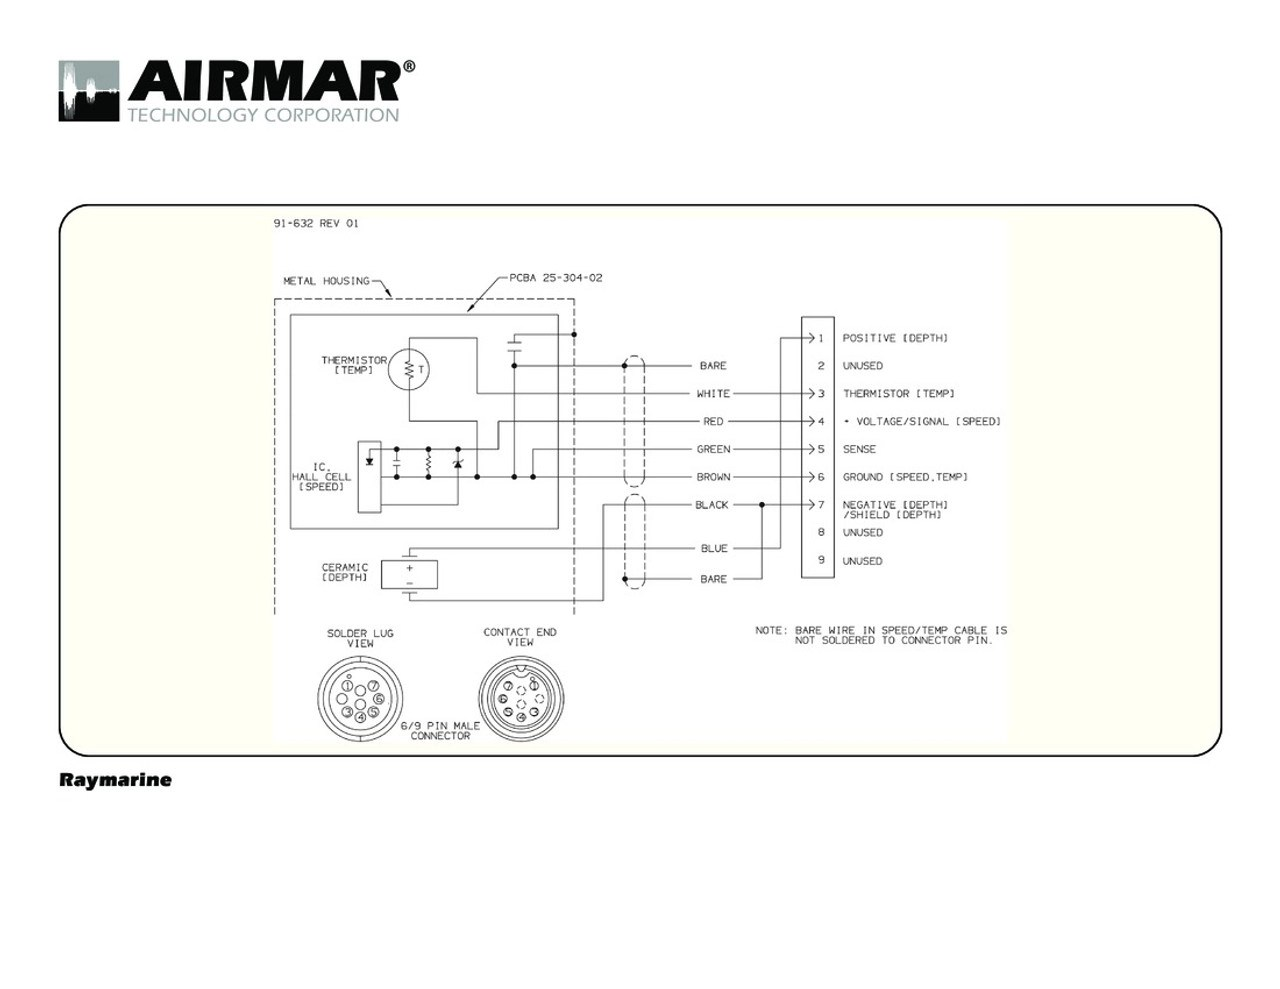 small resolution of depth speed temperature transducers for raymarine a series with raymarine 9 pin airmar wiring diagram